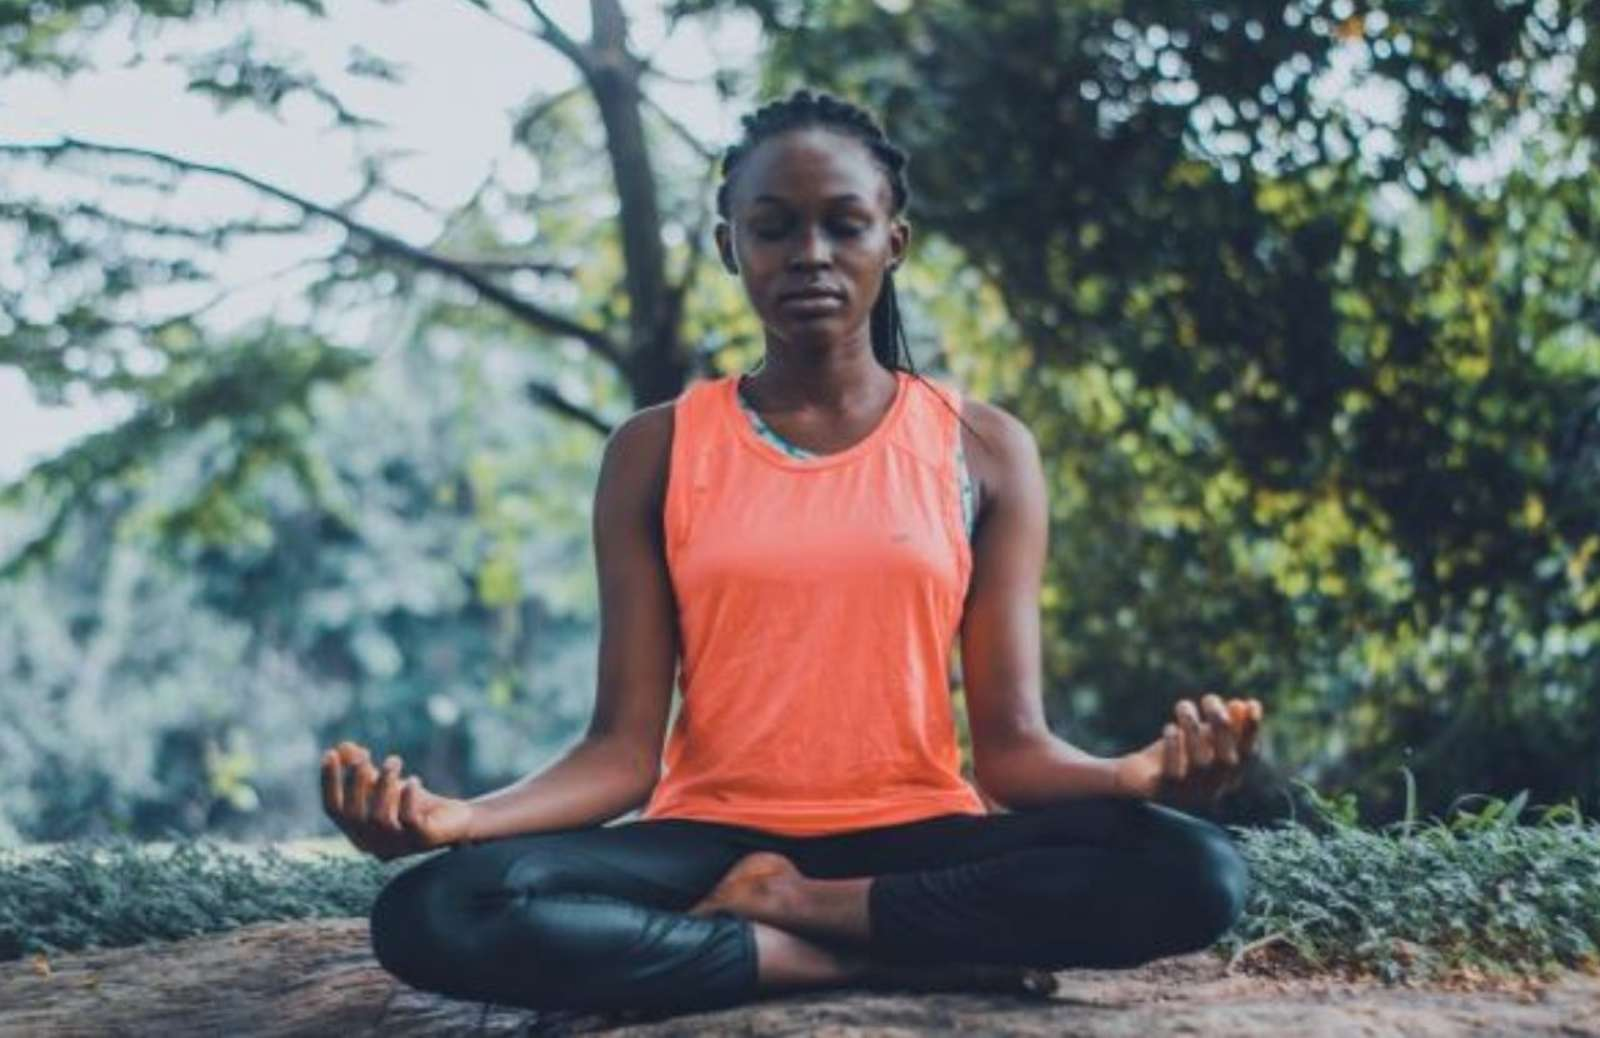 Woman sitting outside on ground practicing yoga